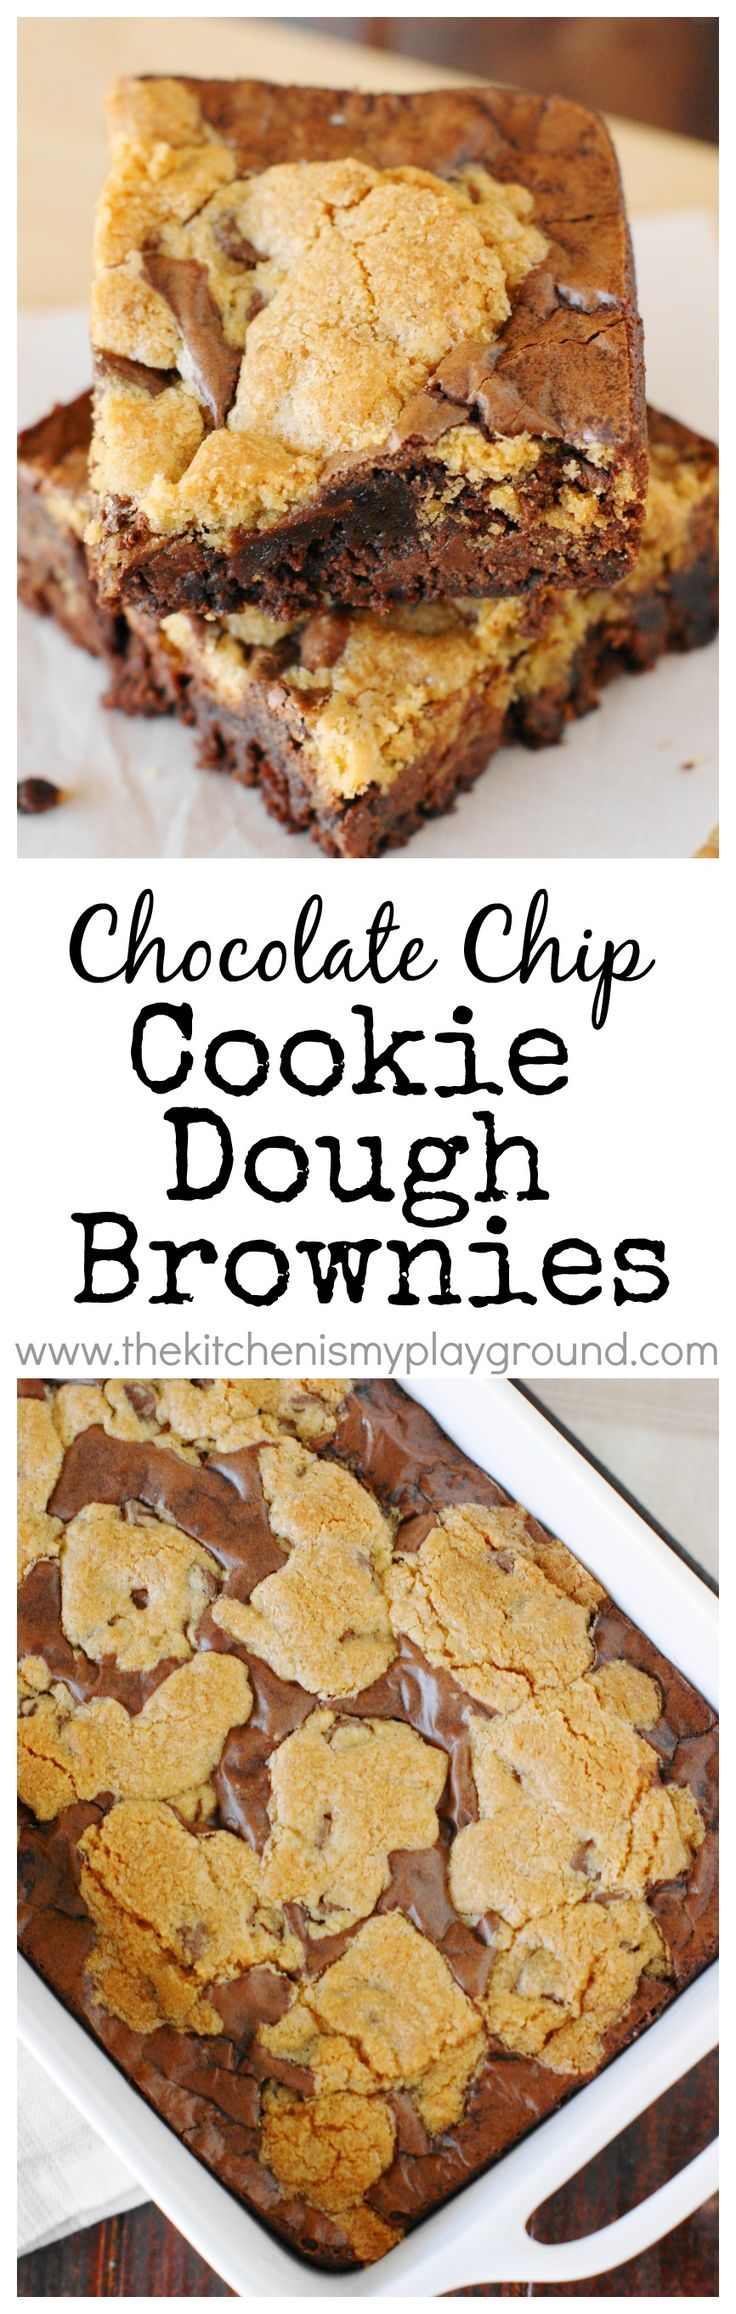 Chocolate Chip Cookie Dough Brownies - and the great ganache debate